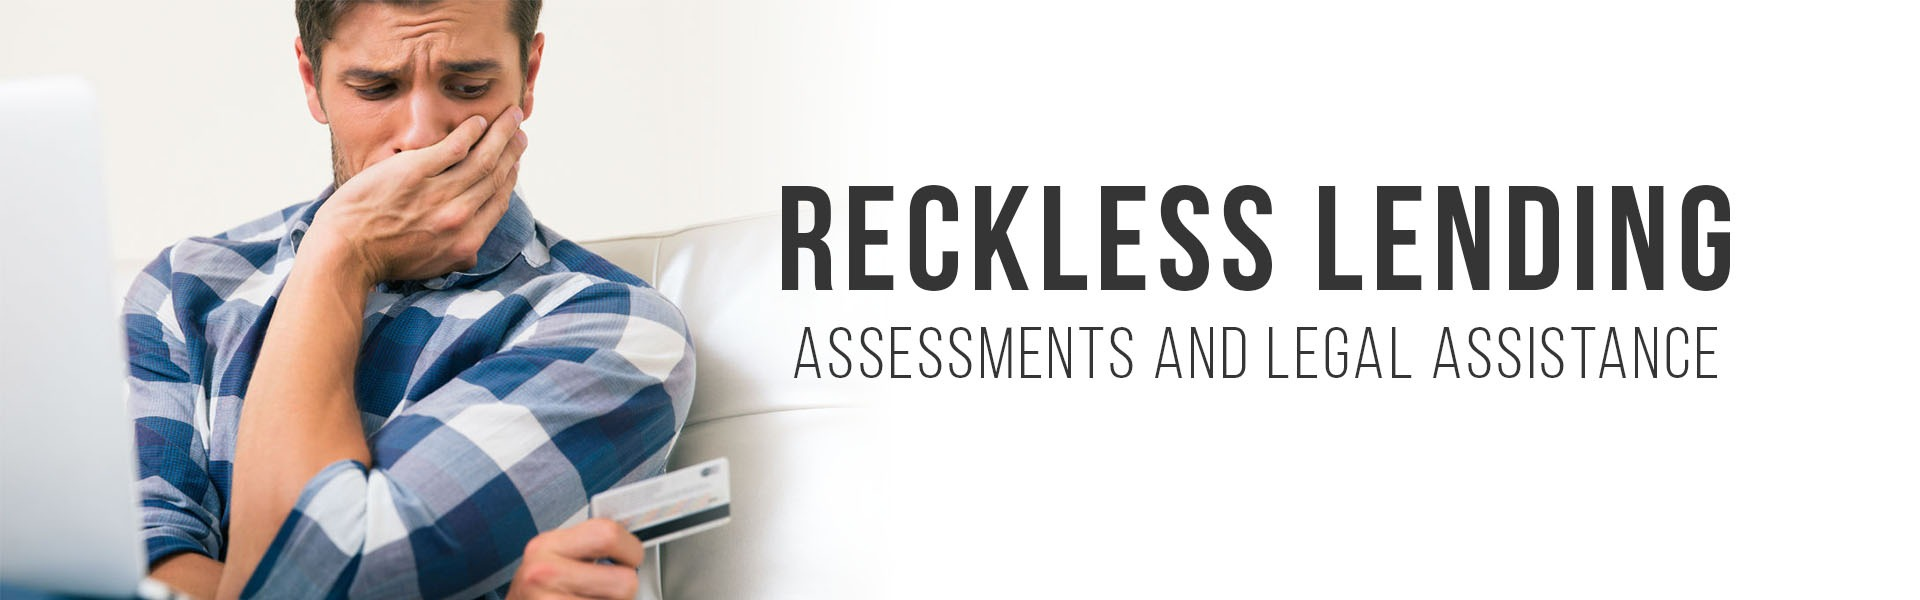 reckless-lending-banner